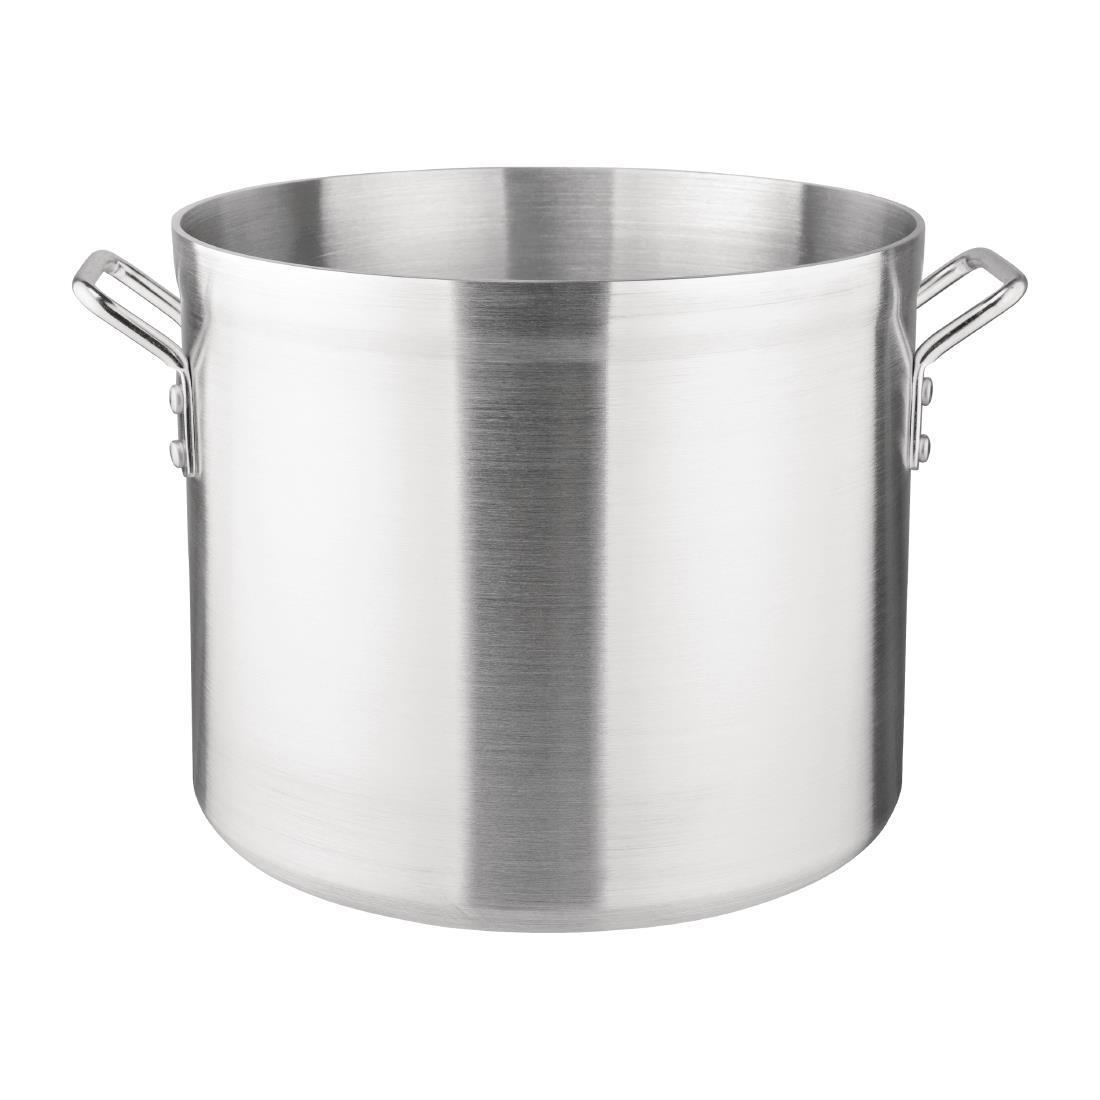 Vogue Deep Boiling Pot 22.7Ltr - S351